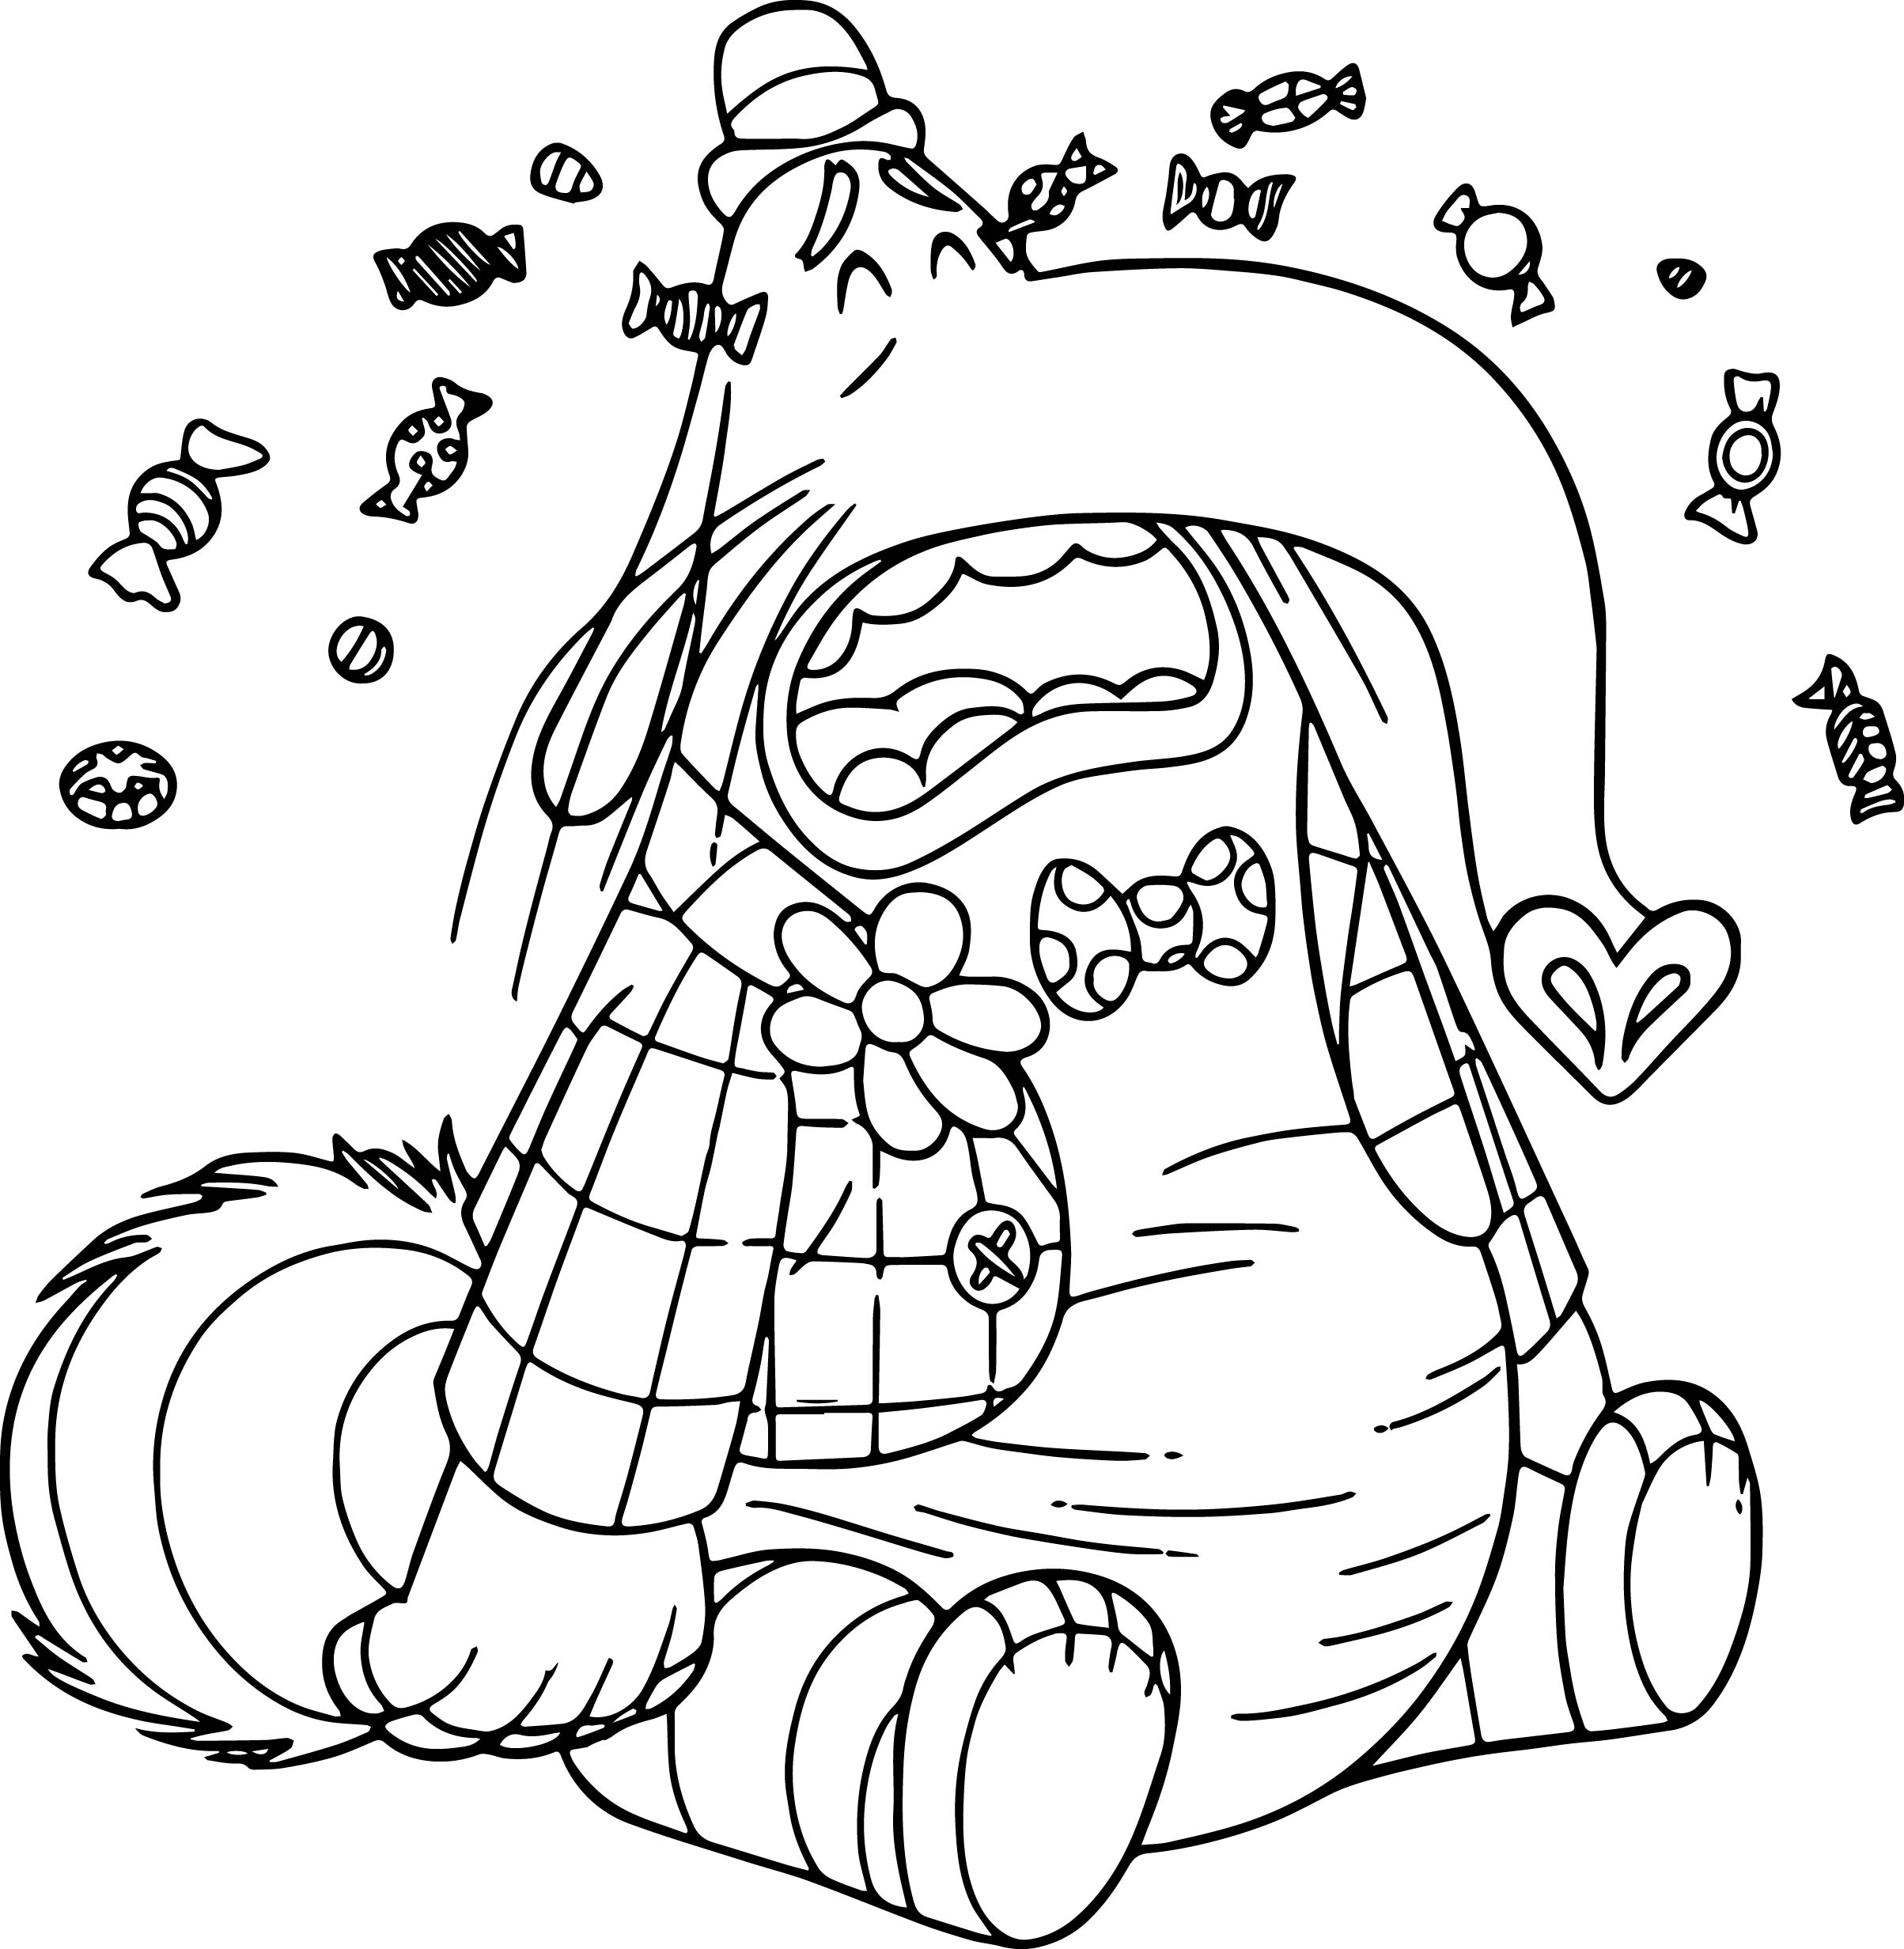 Inside out coloring pages riley - Bingbong Cry Coloring Pages